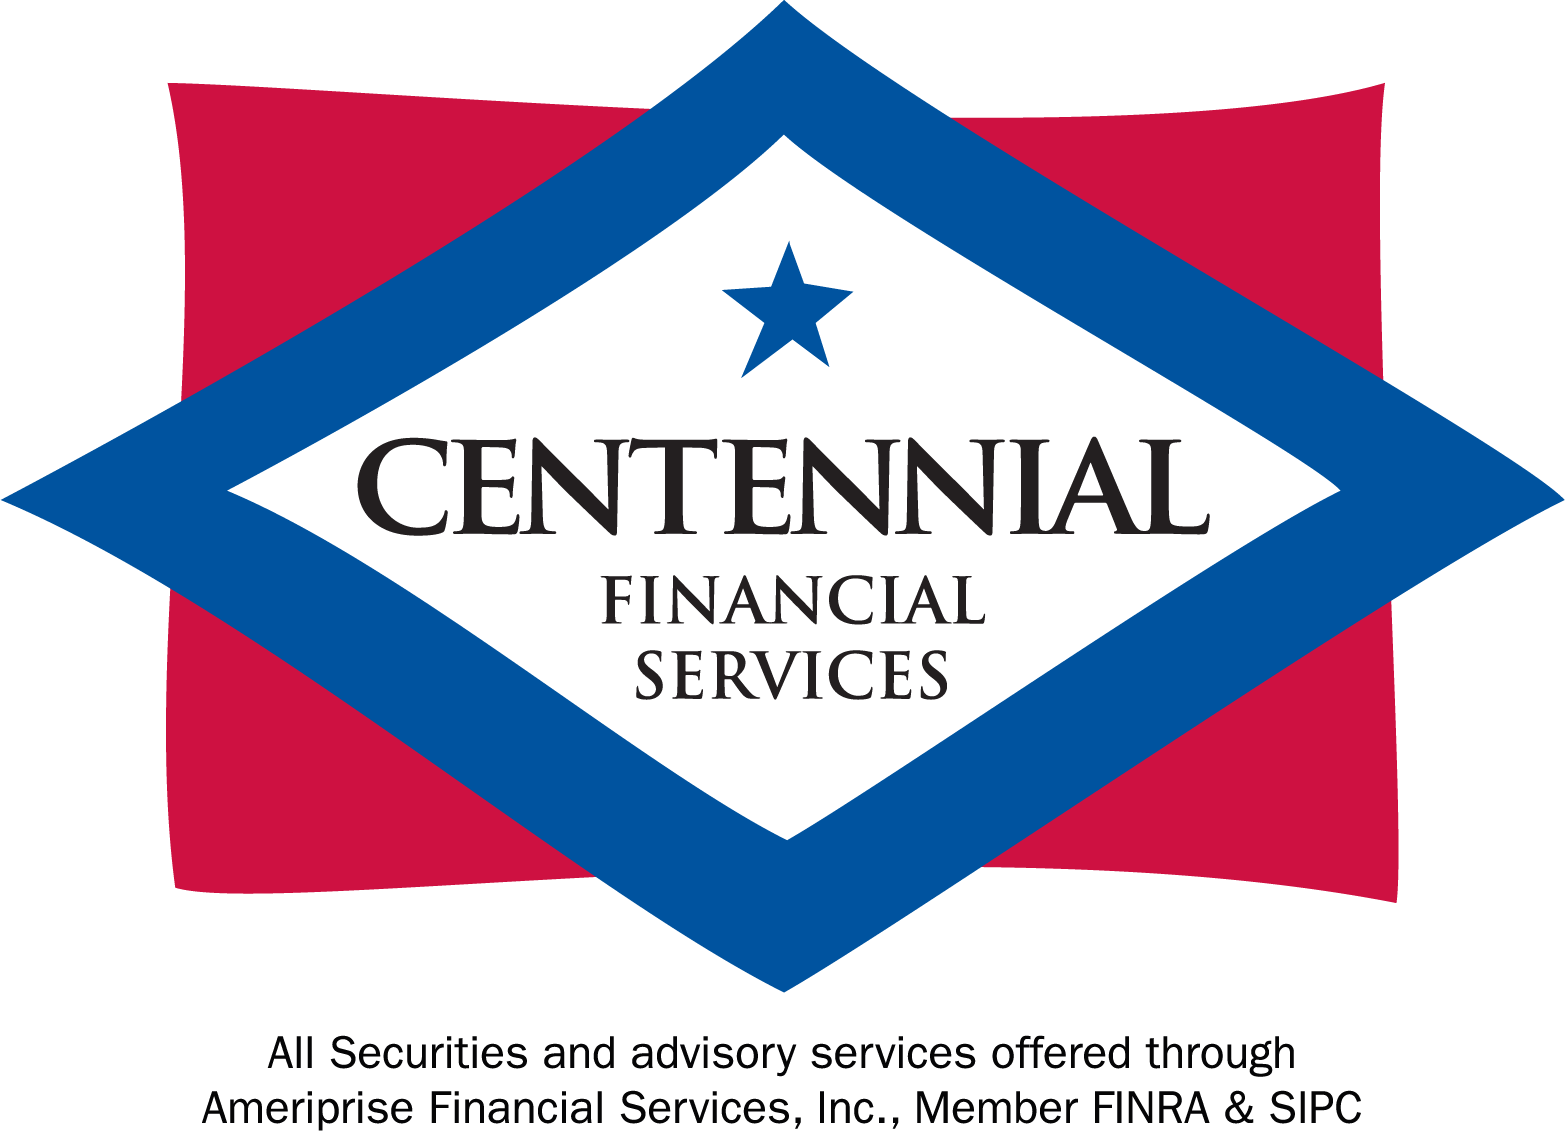 Centennial Financial Services logo